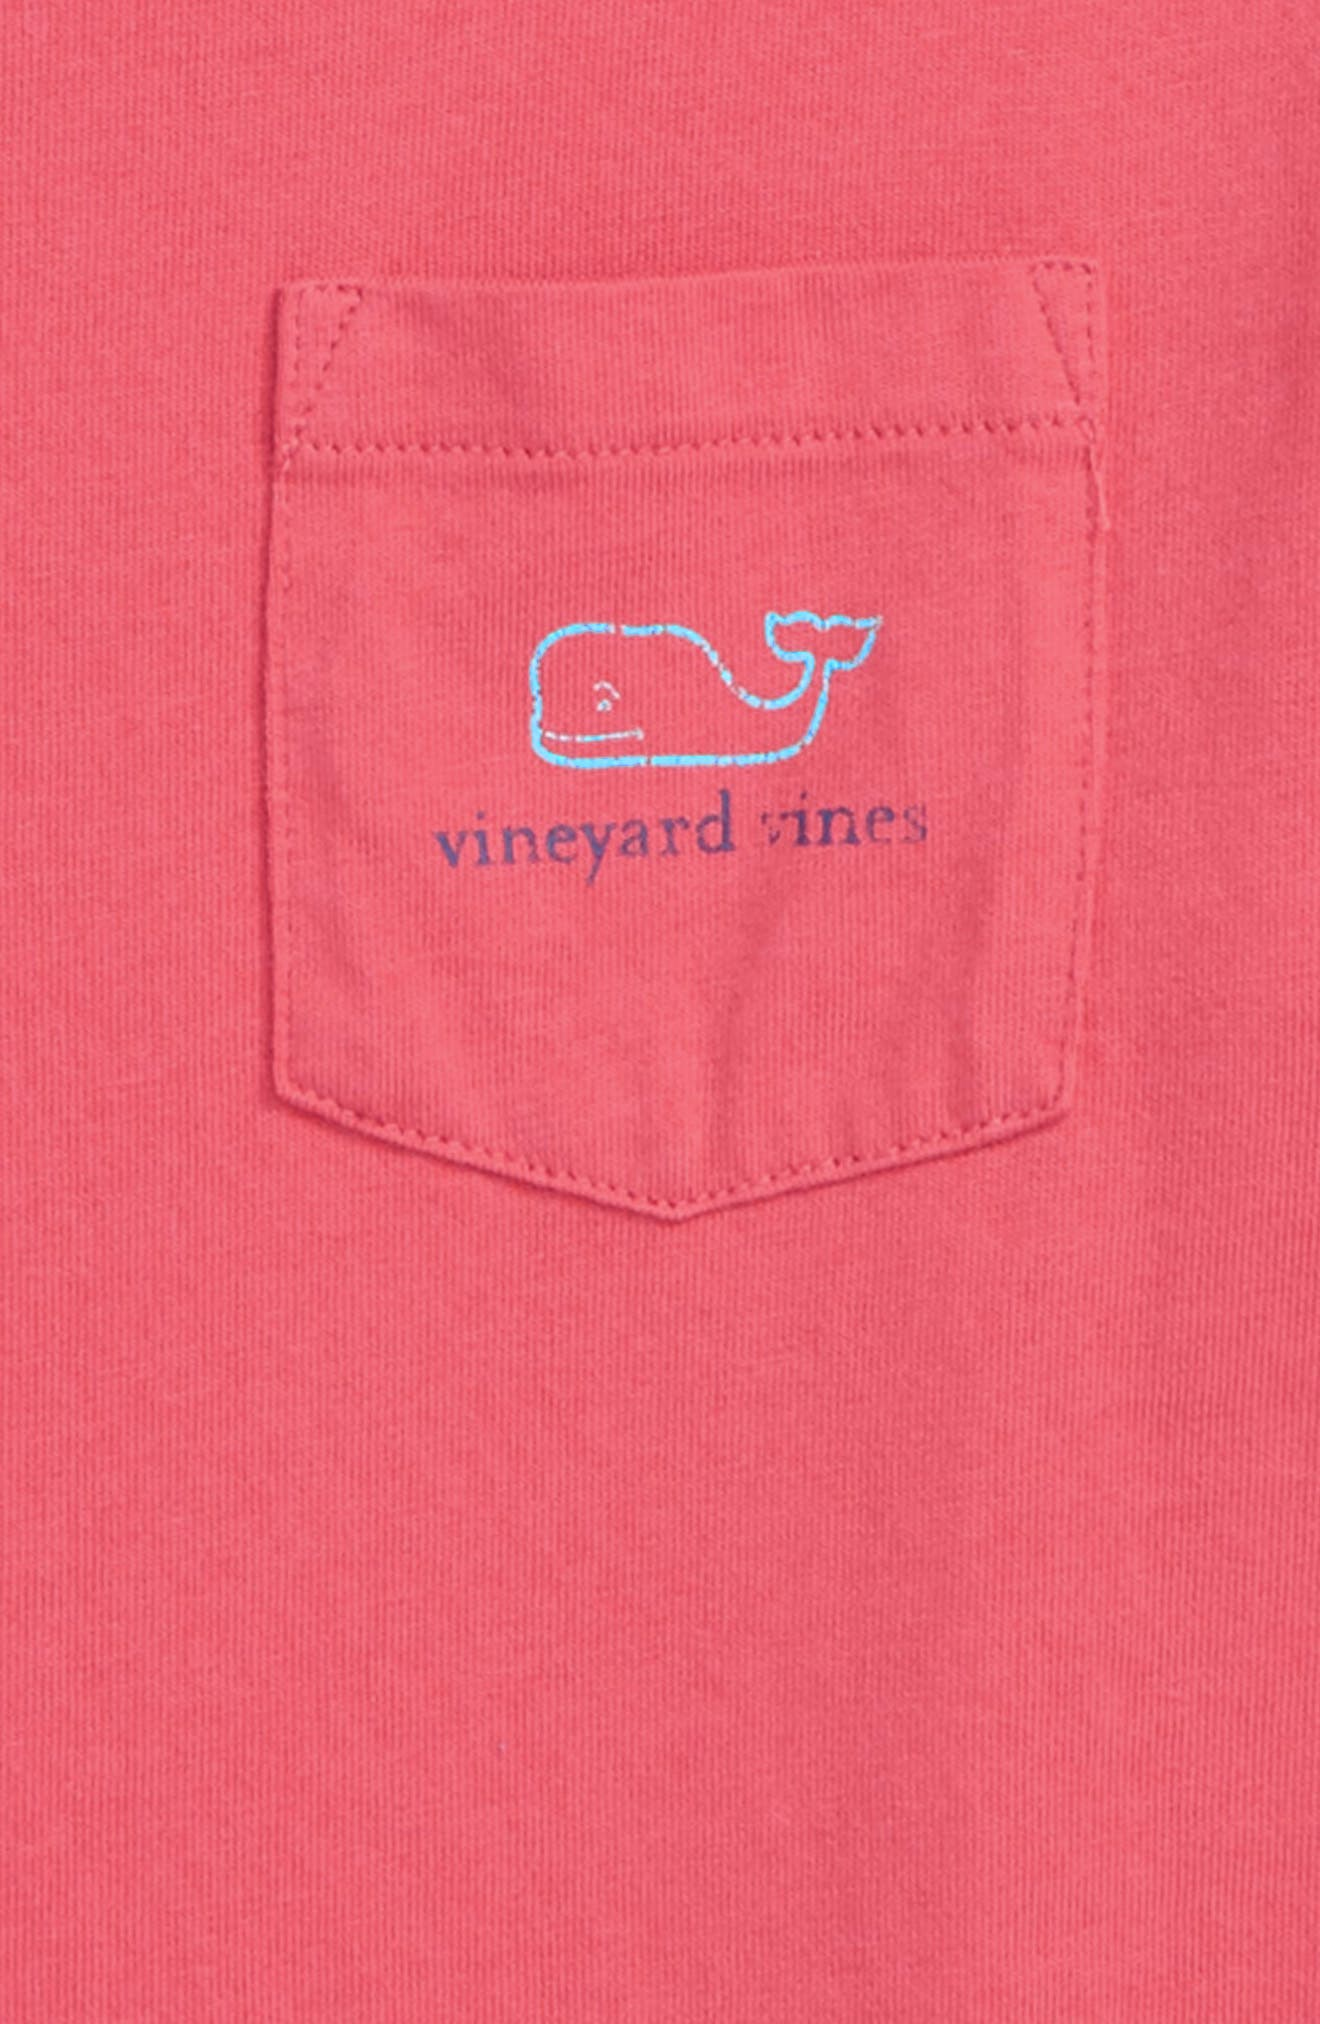 Stone Vintage Whale Pocket T-Shirt,                             Alternate thumbnail 3, color,                             Jetty Red